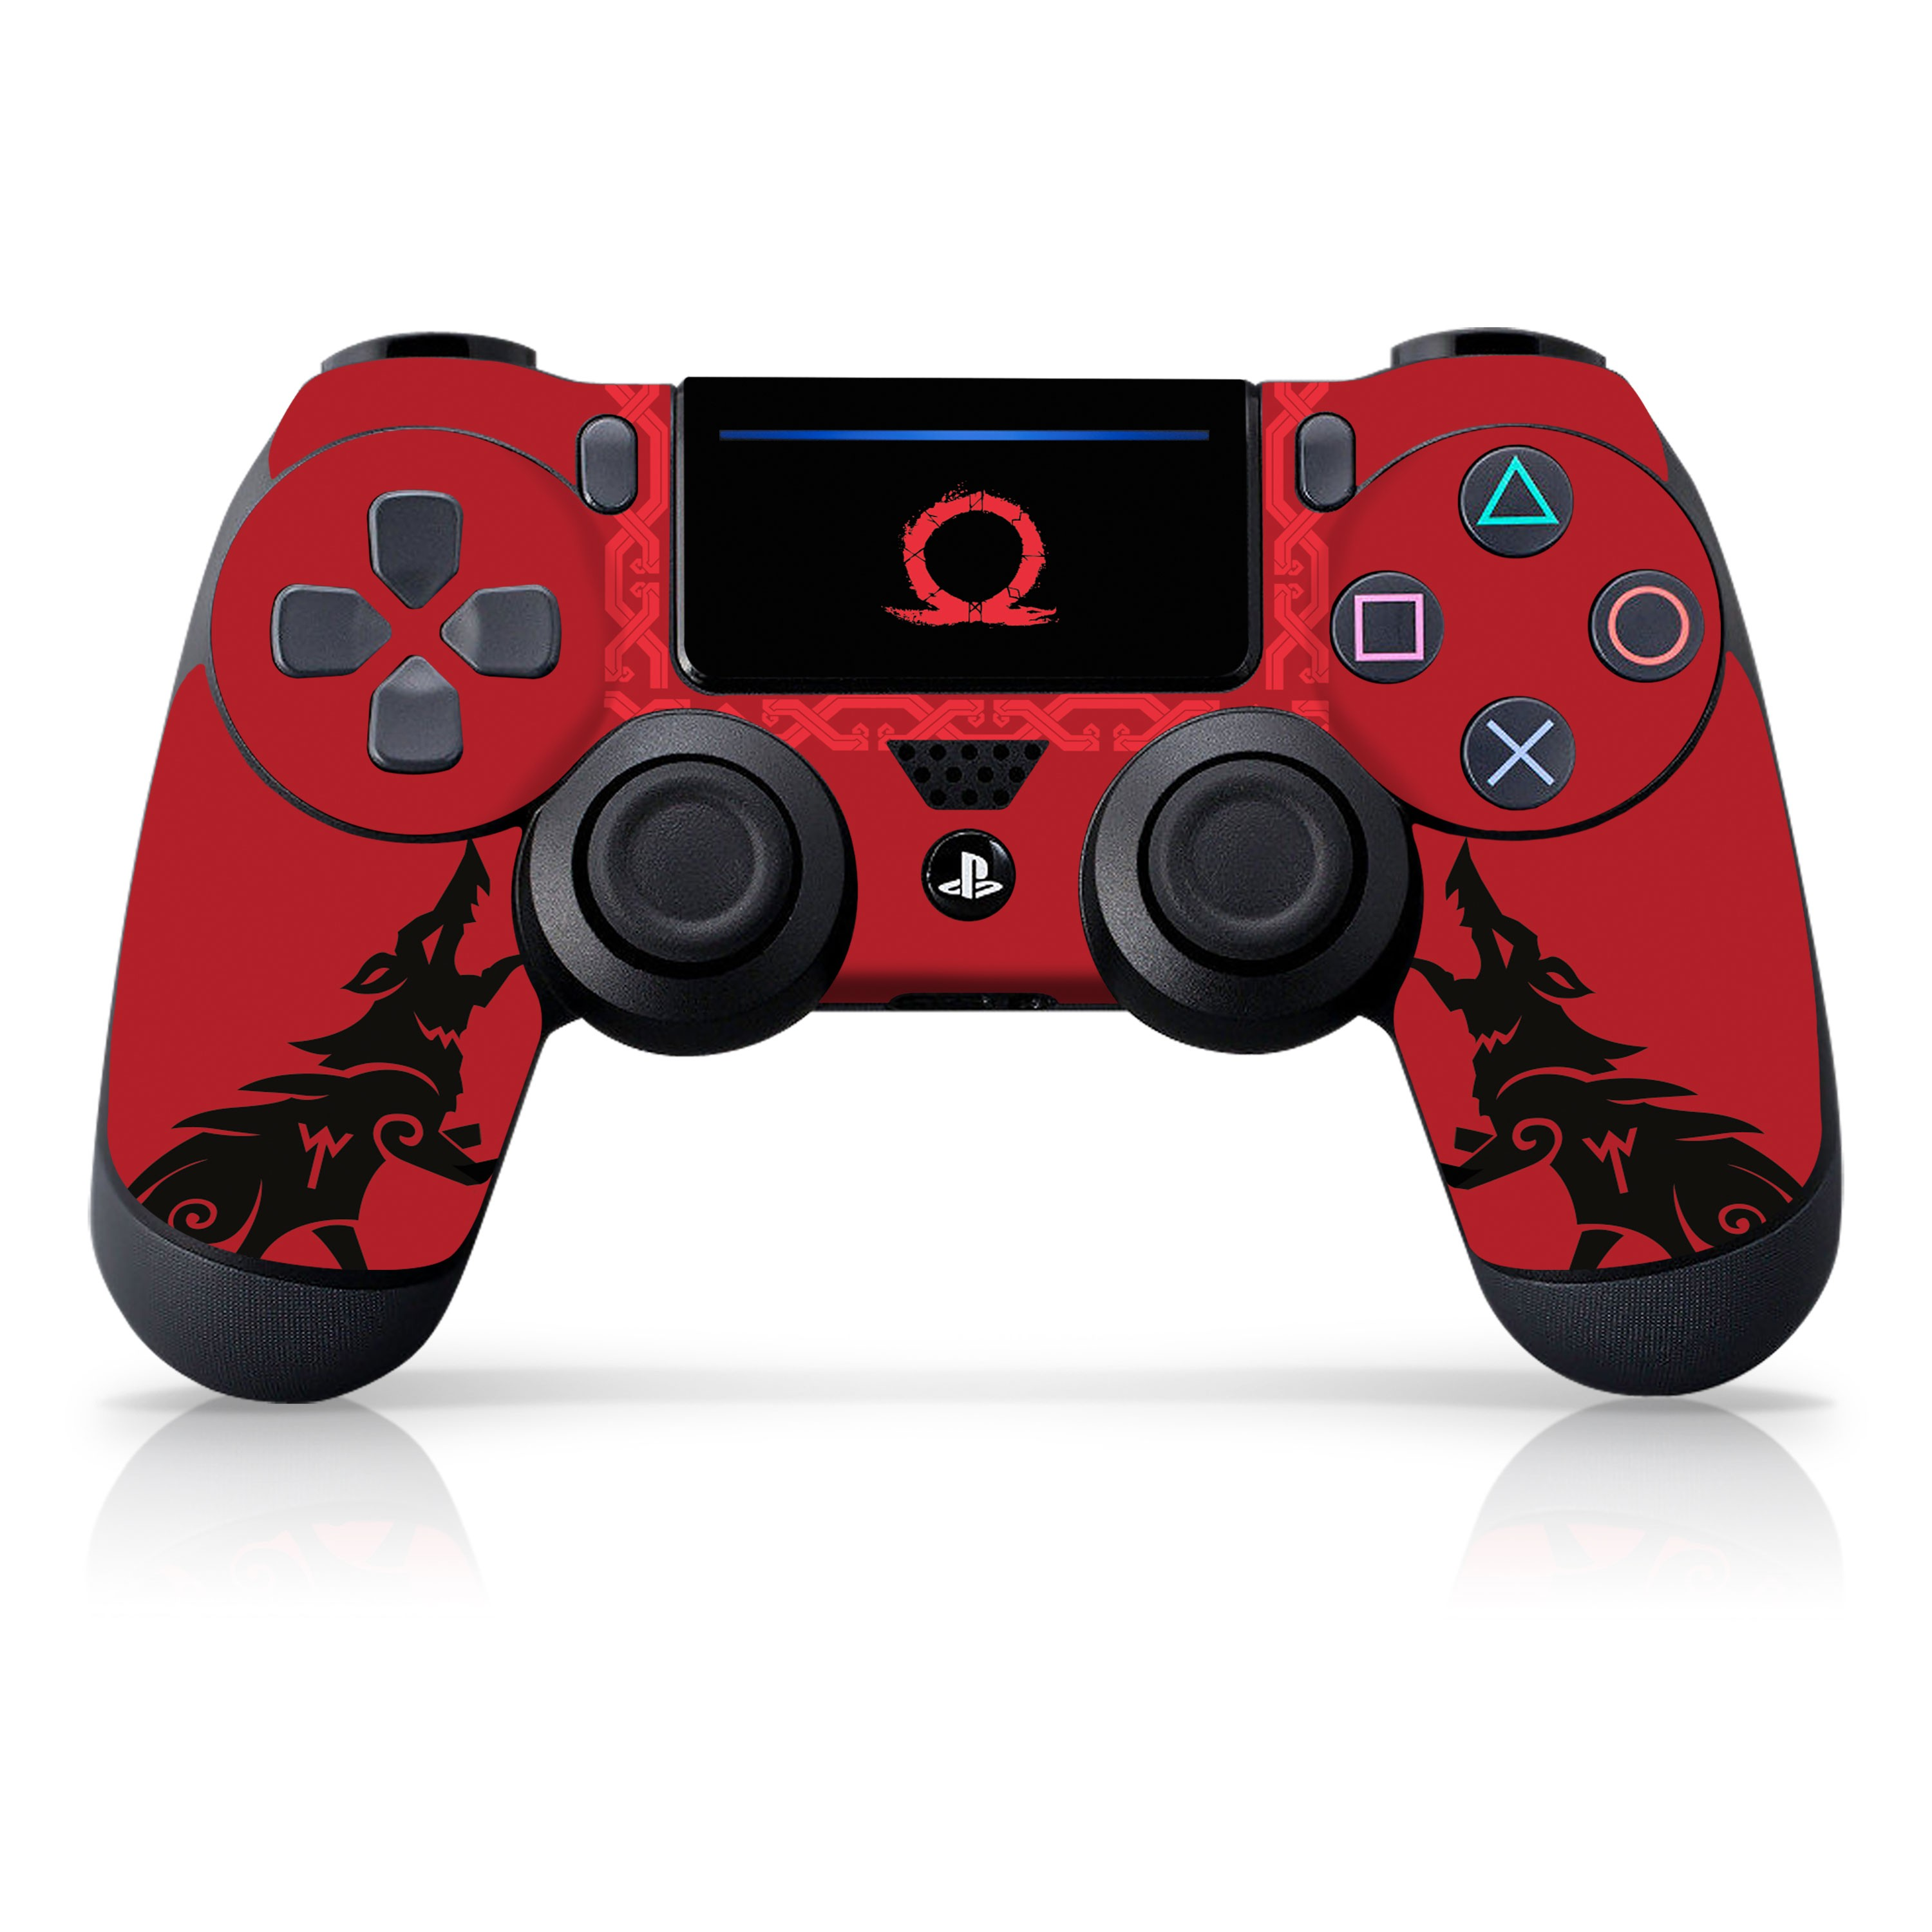 "Officially Licensed PlayStation 4 God of War DUALSHOCK 4 Wireless Controller Skin and Tech Decals ""Howling Red"""